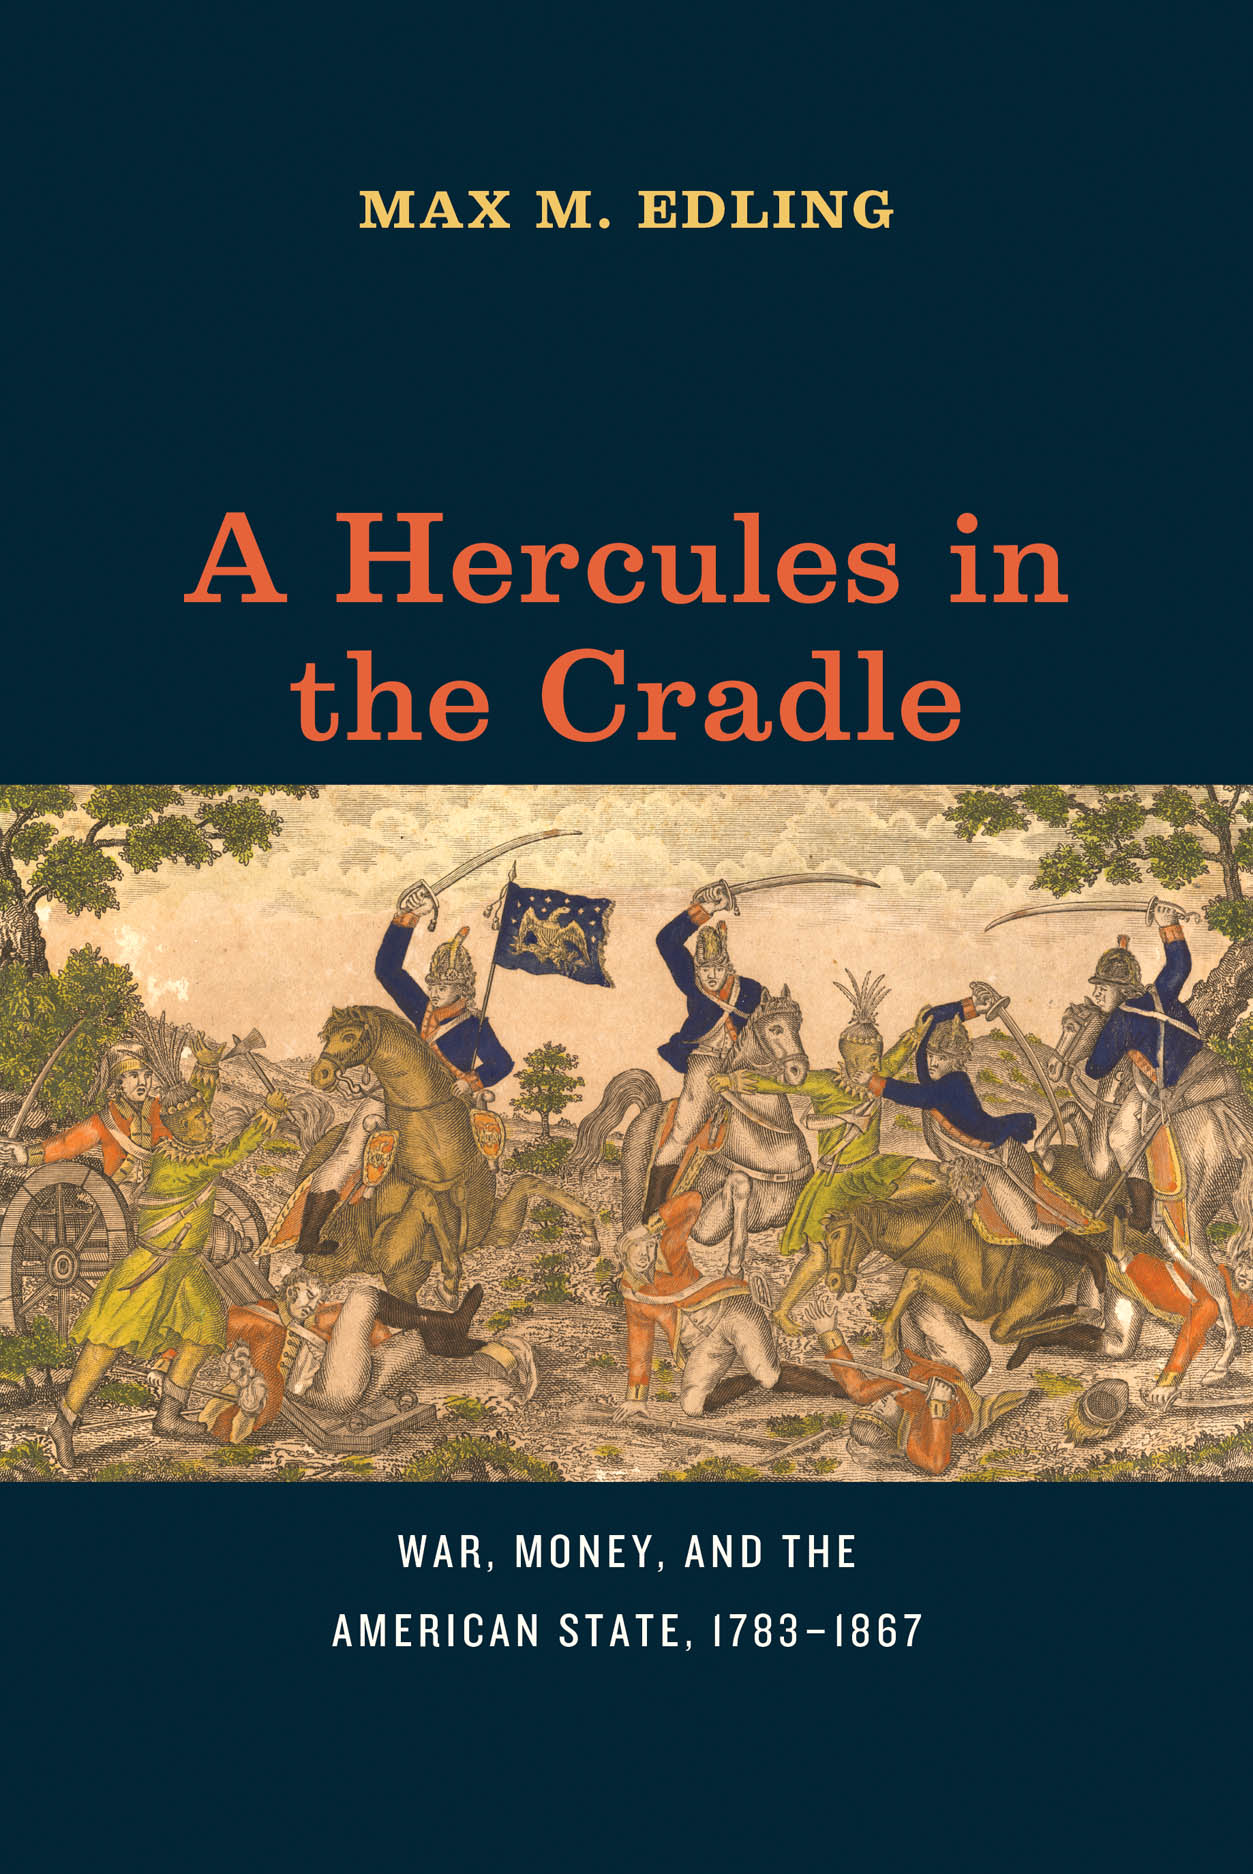 A Hercules in the Cradle: War, Money, and the American State, 1783-1867